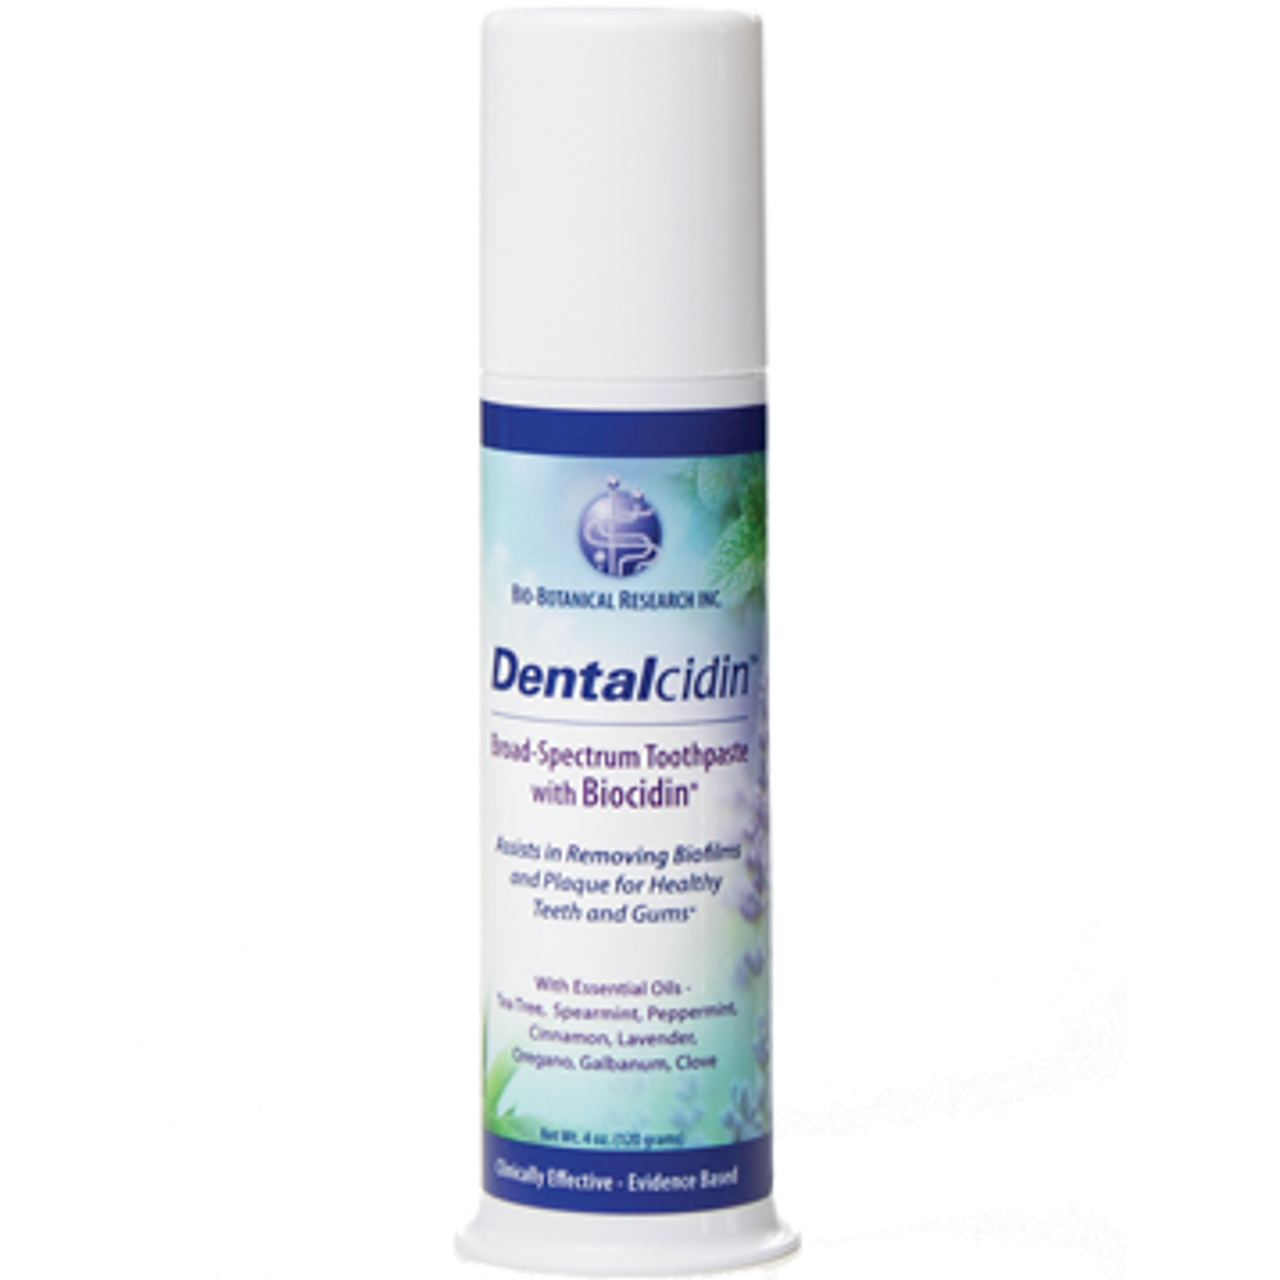 Bio-Botanical Research Dentalcidin Broad-Spectrum Toothpaste with Biocidin